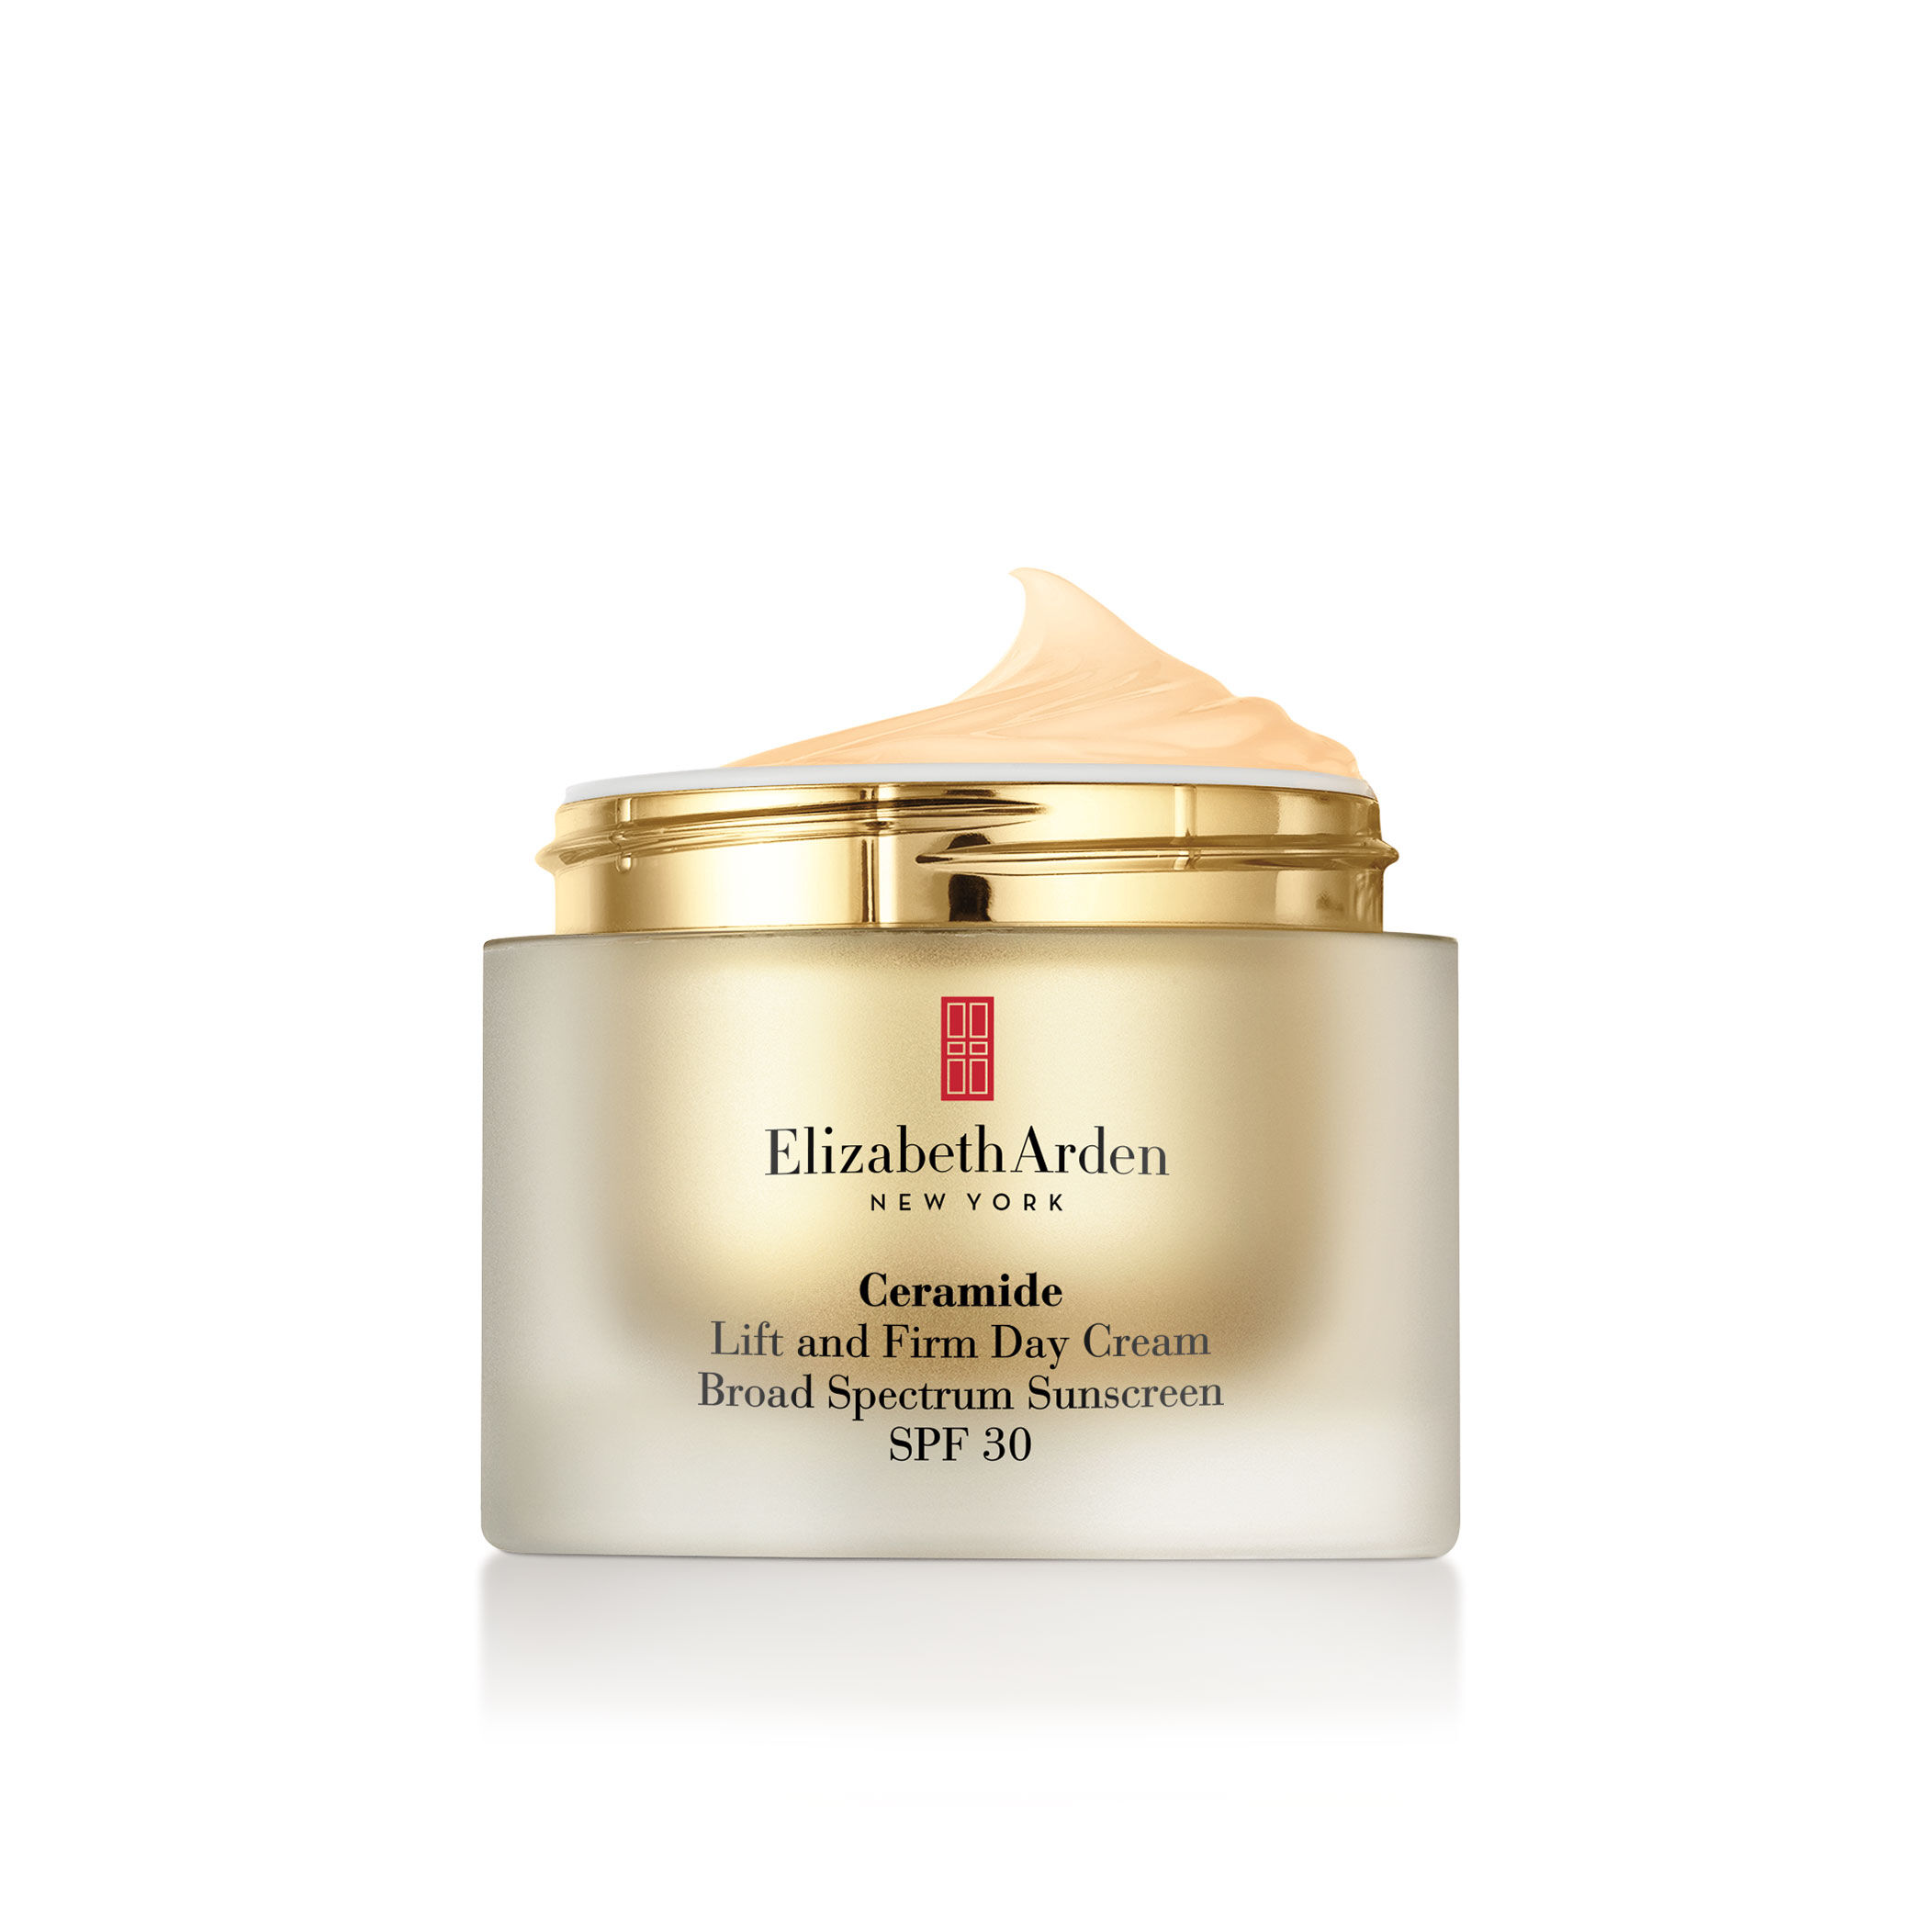 Ceramide Lift and Firm Day Cream Broad Spectrum Sunscreen SPF30